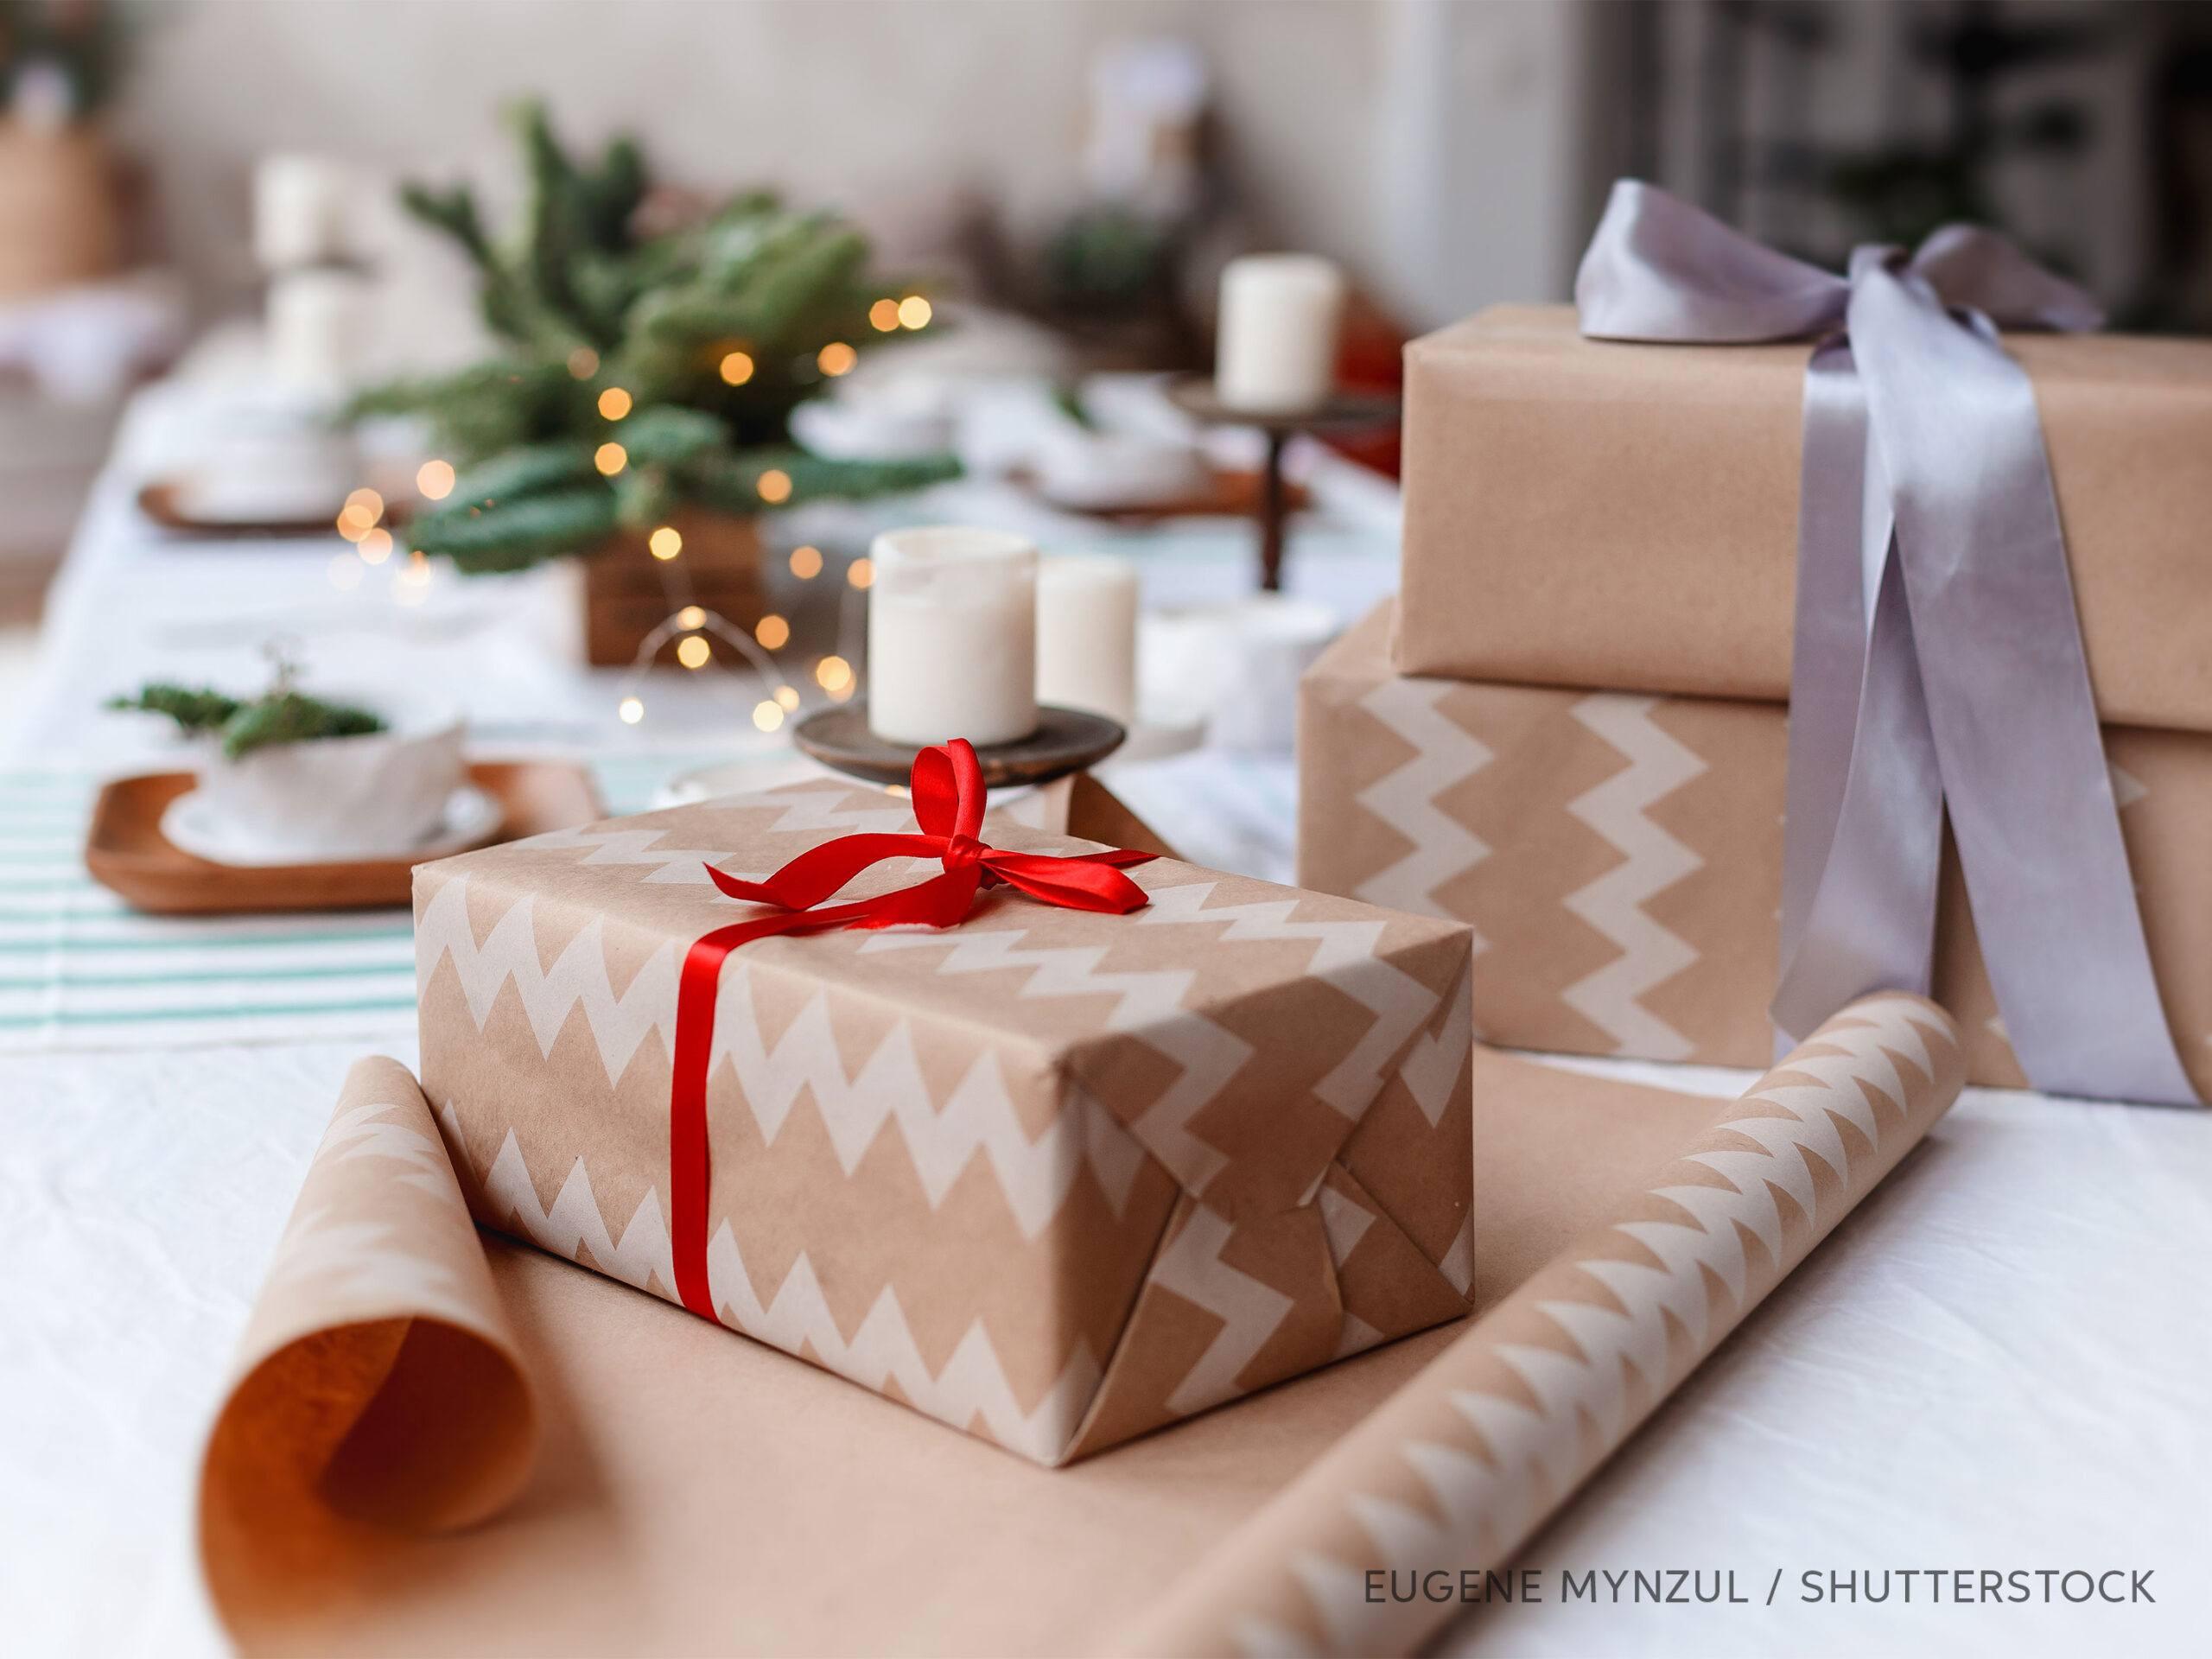 Wrapping presents on a holiday table, photo